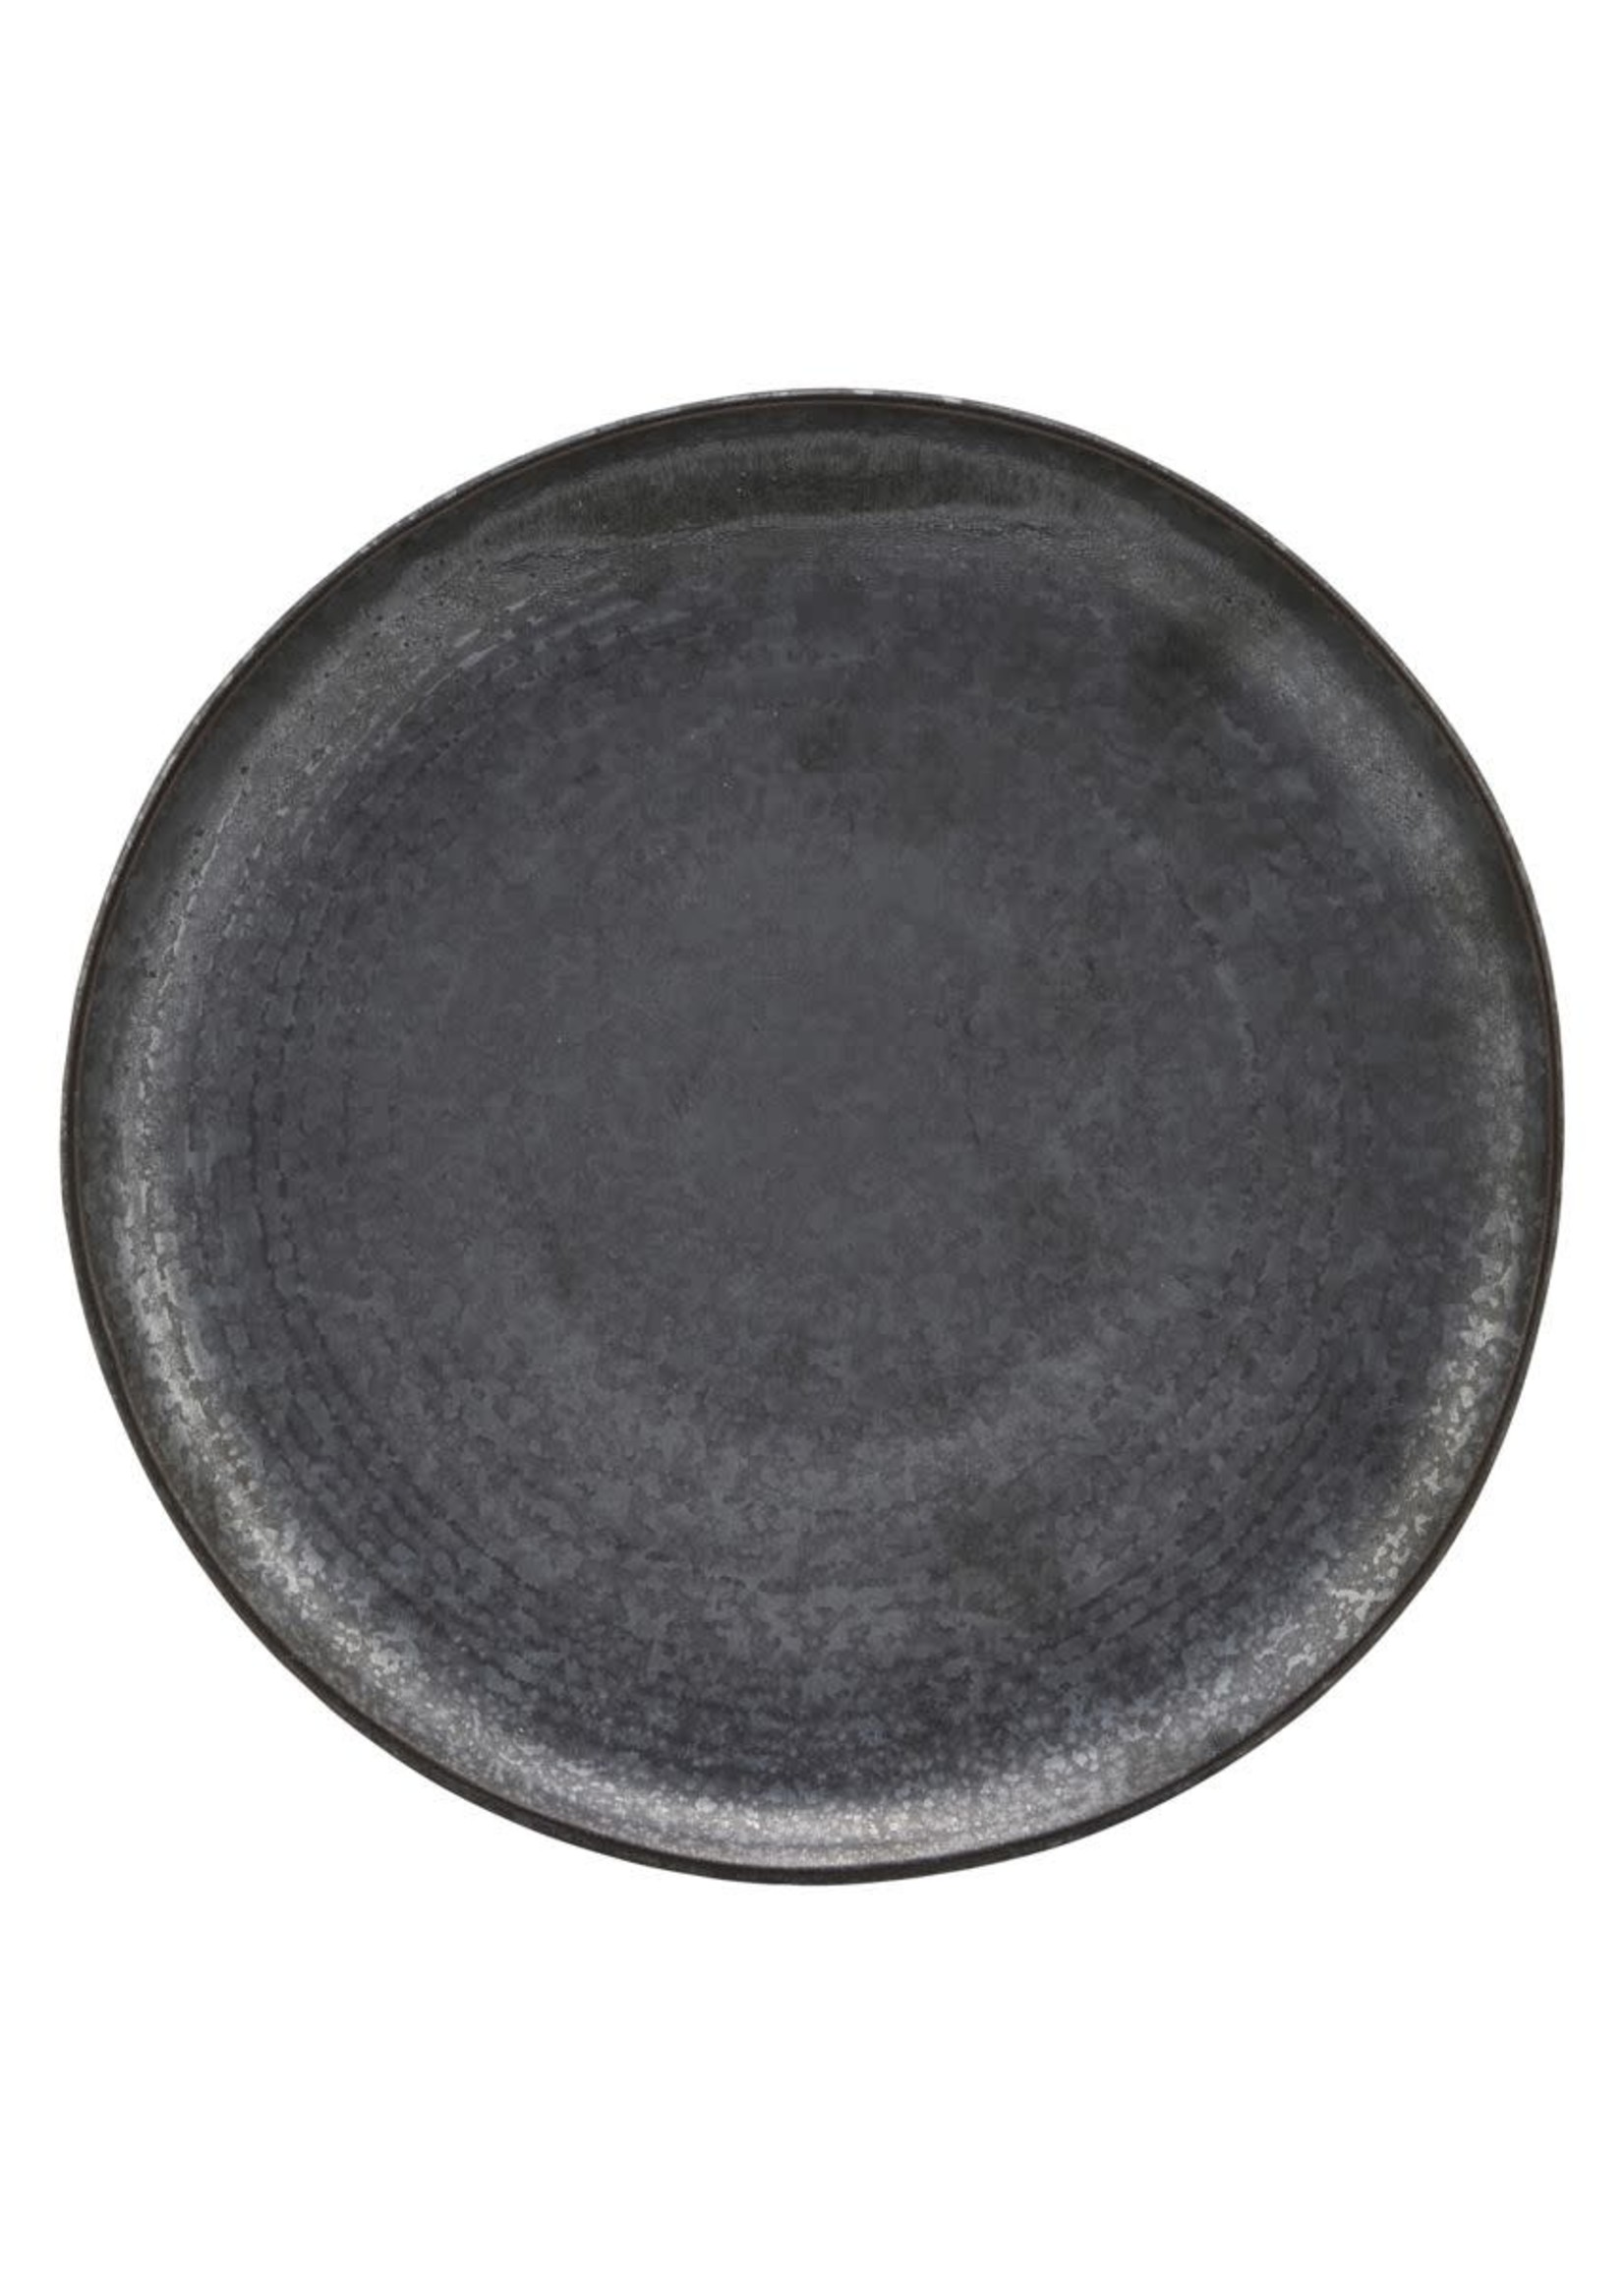 House Doctor Lunch plate, Pion, Black/Brown